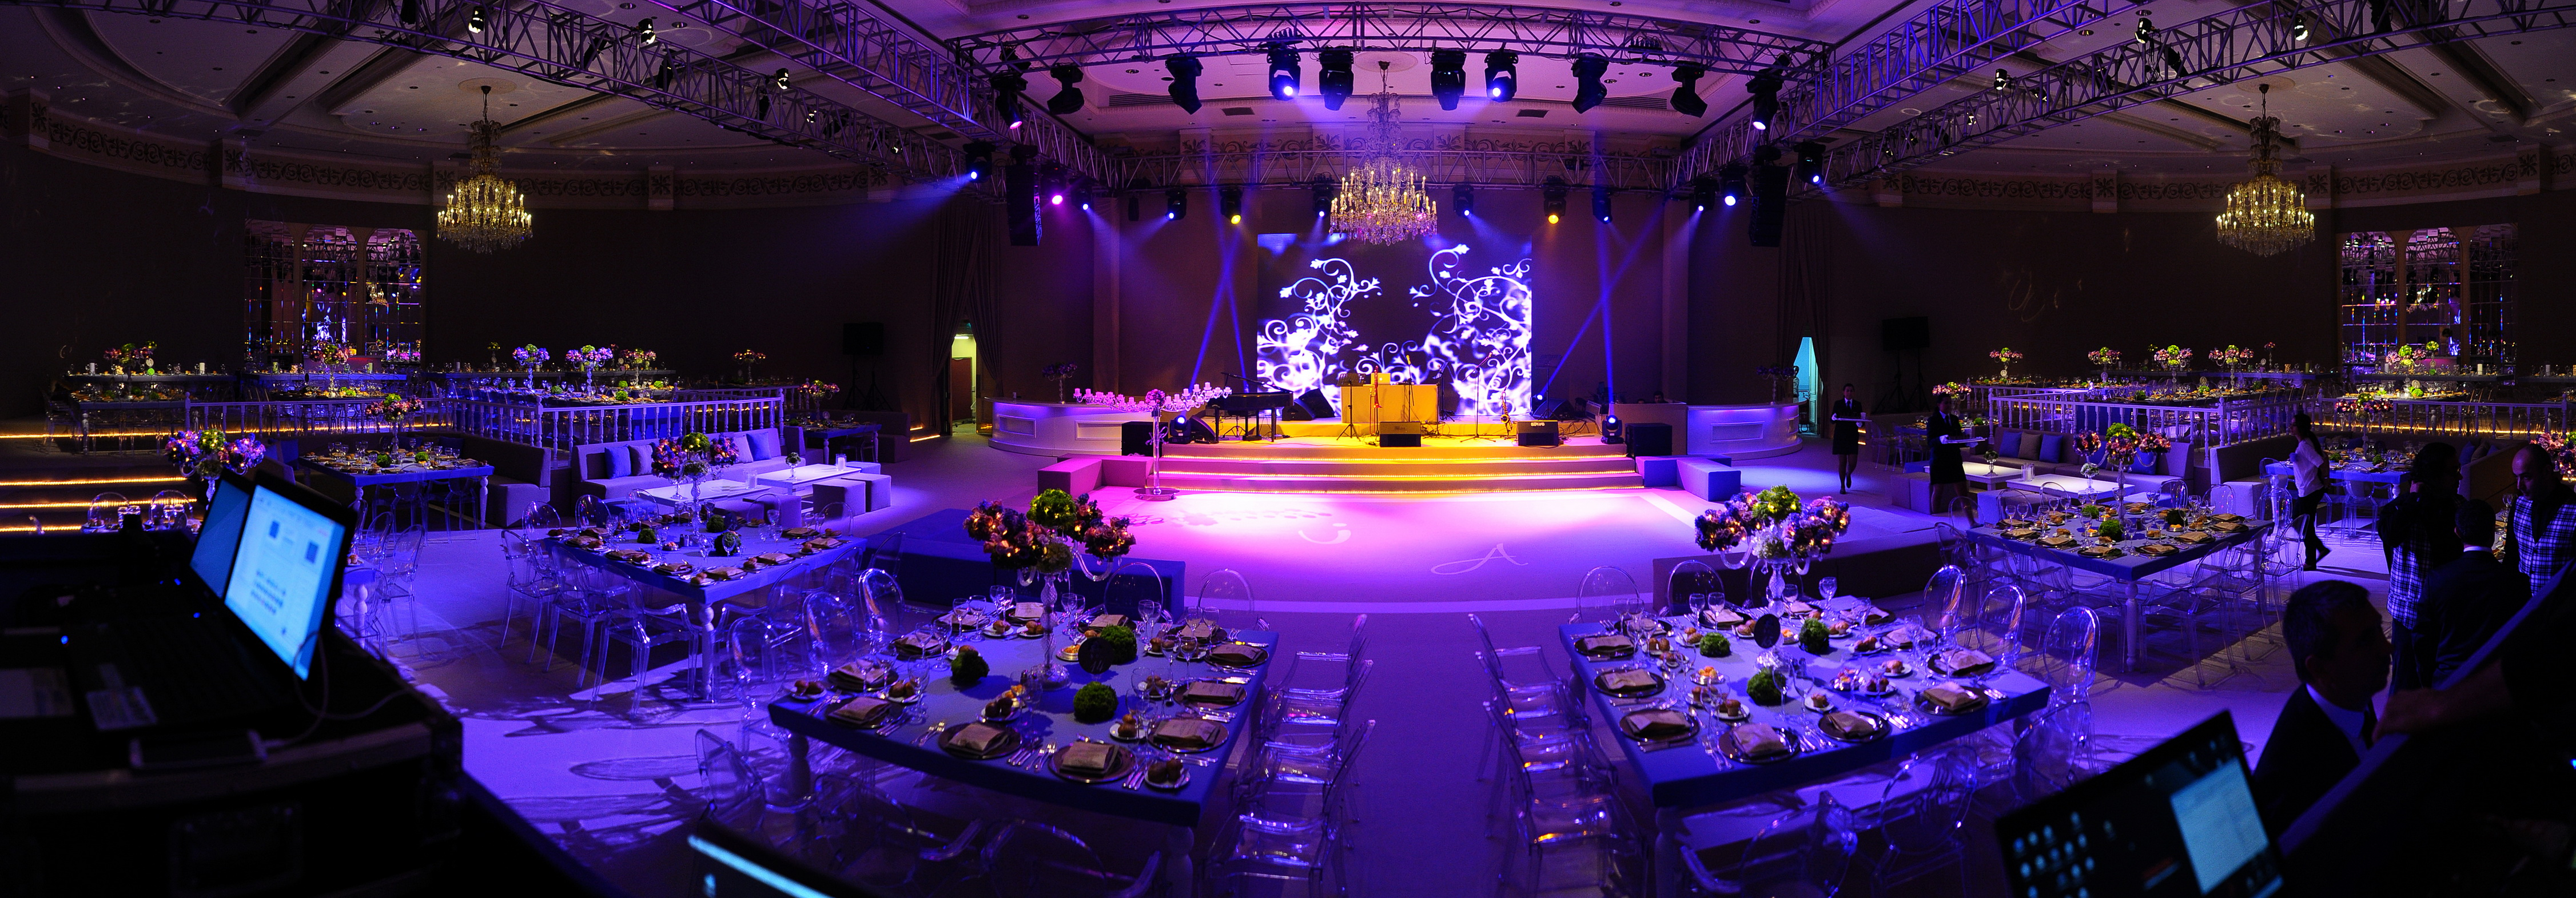 Wedding Venues - Conrad Istanbul - Crystal Concepts Weddings